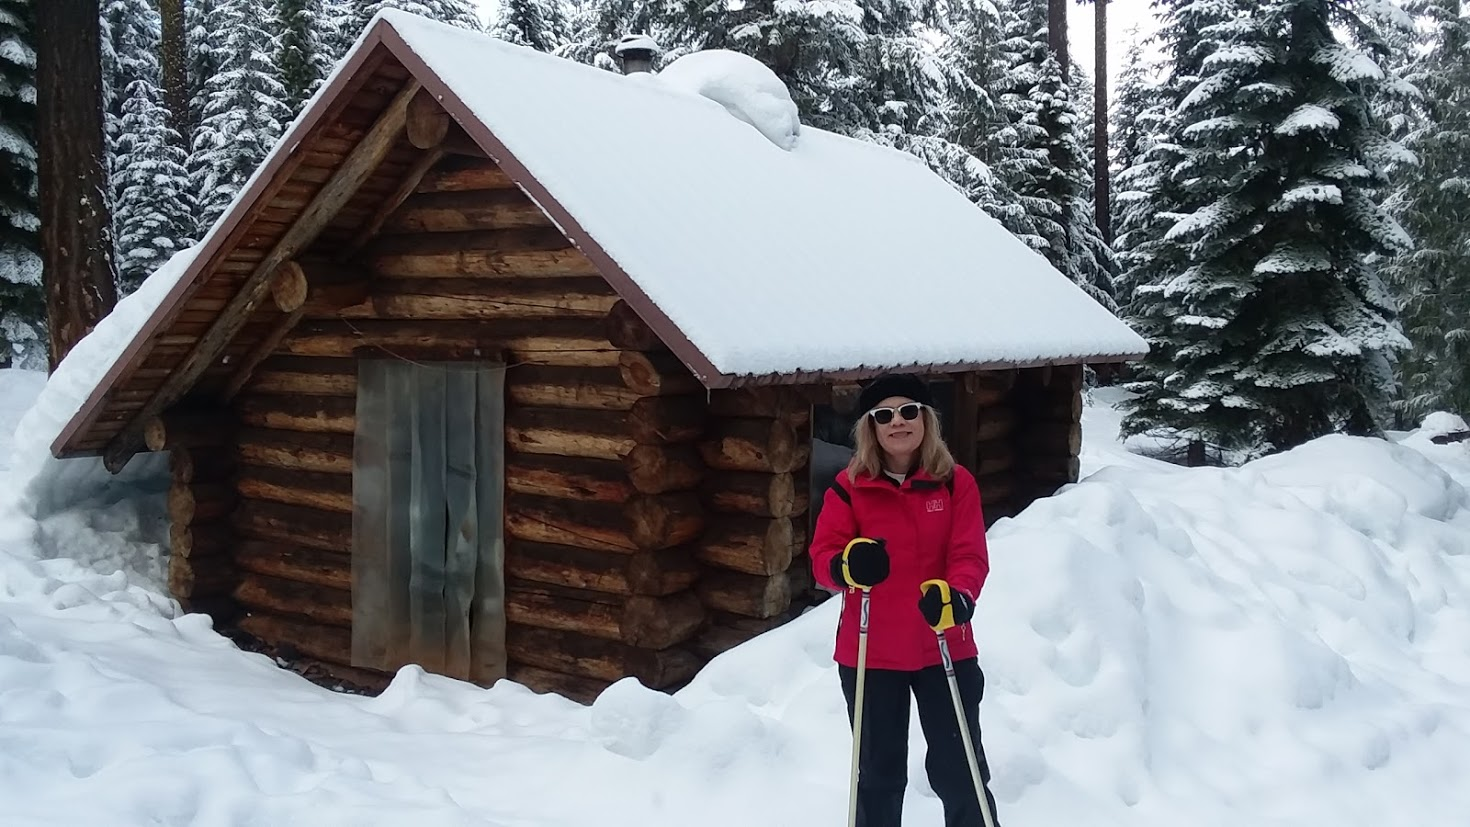 Feb 6: Saturday Snowshoe Hike from 9:30-2:30